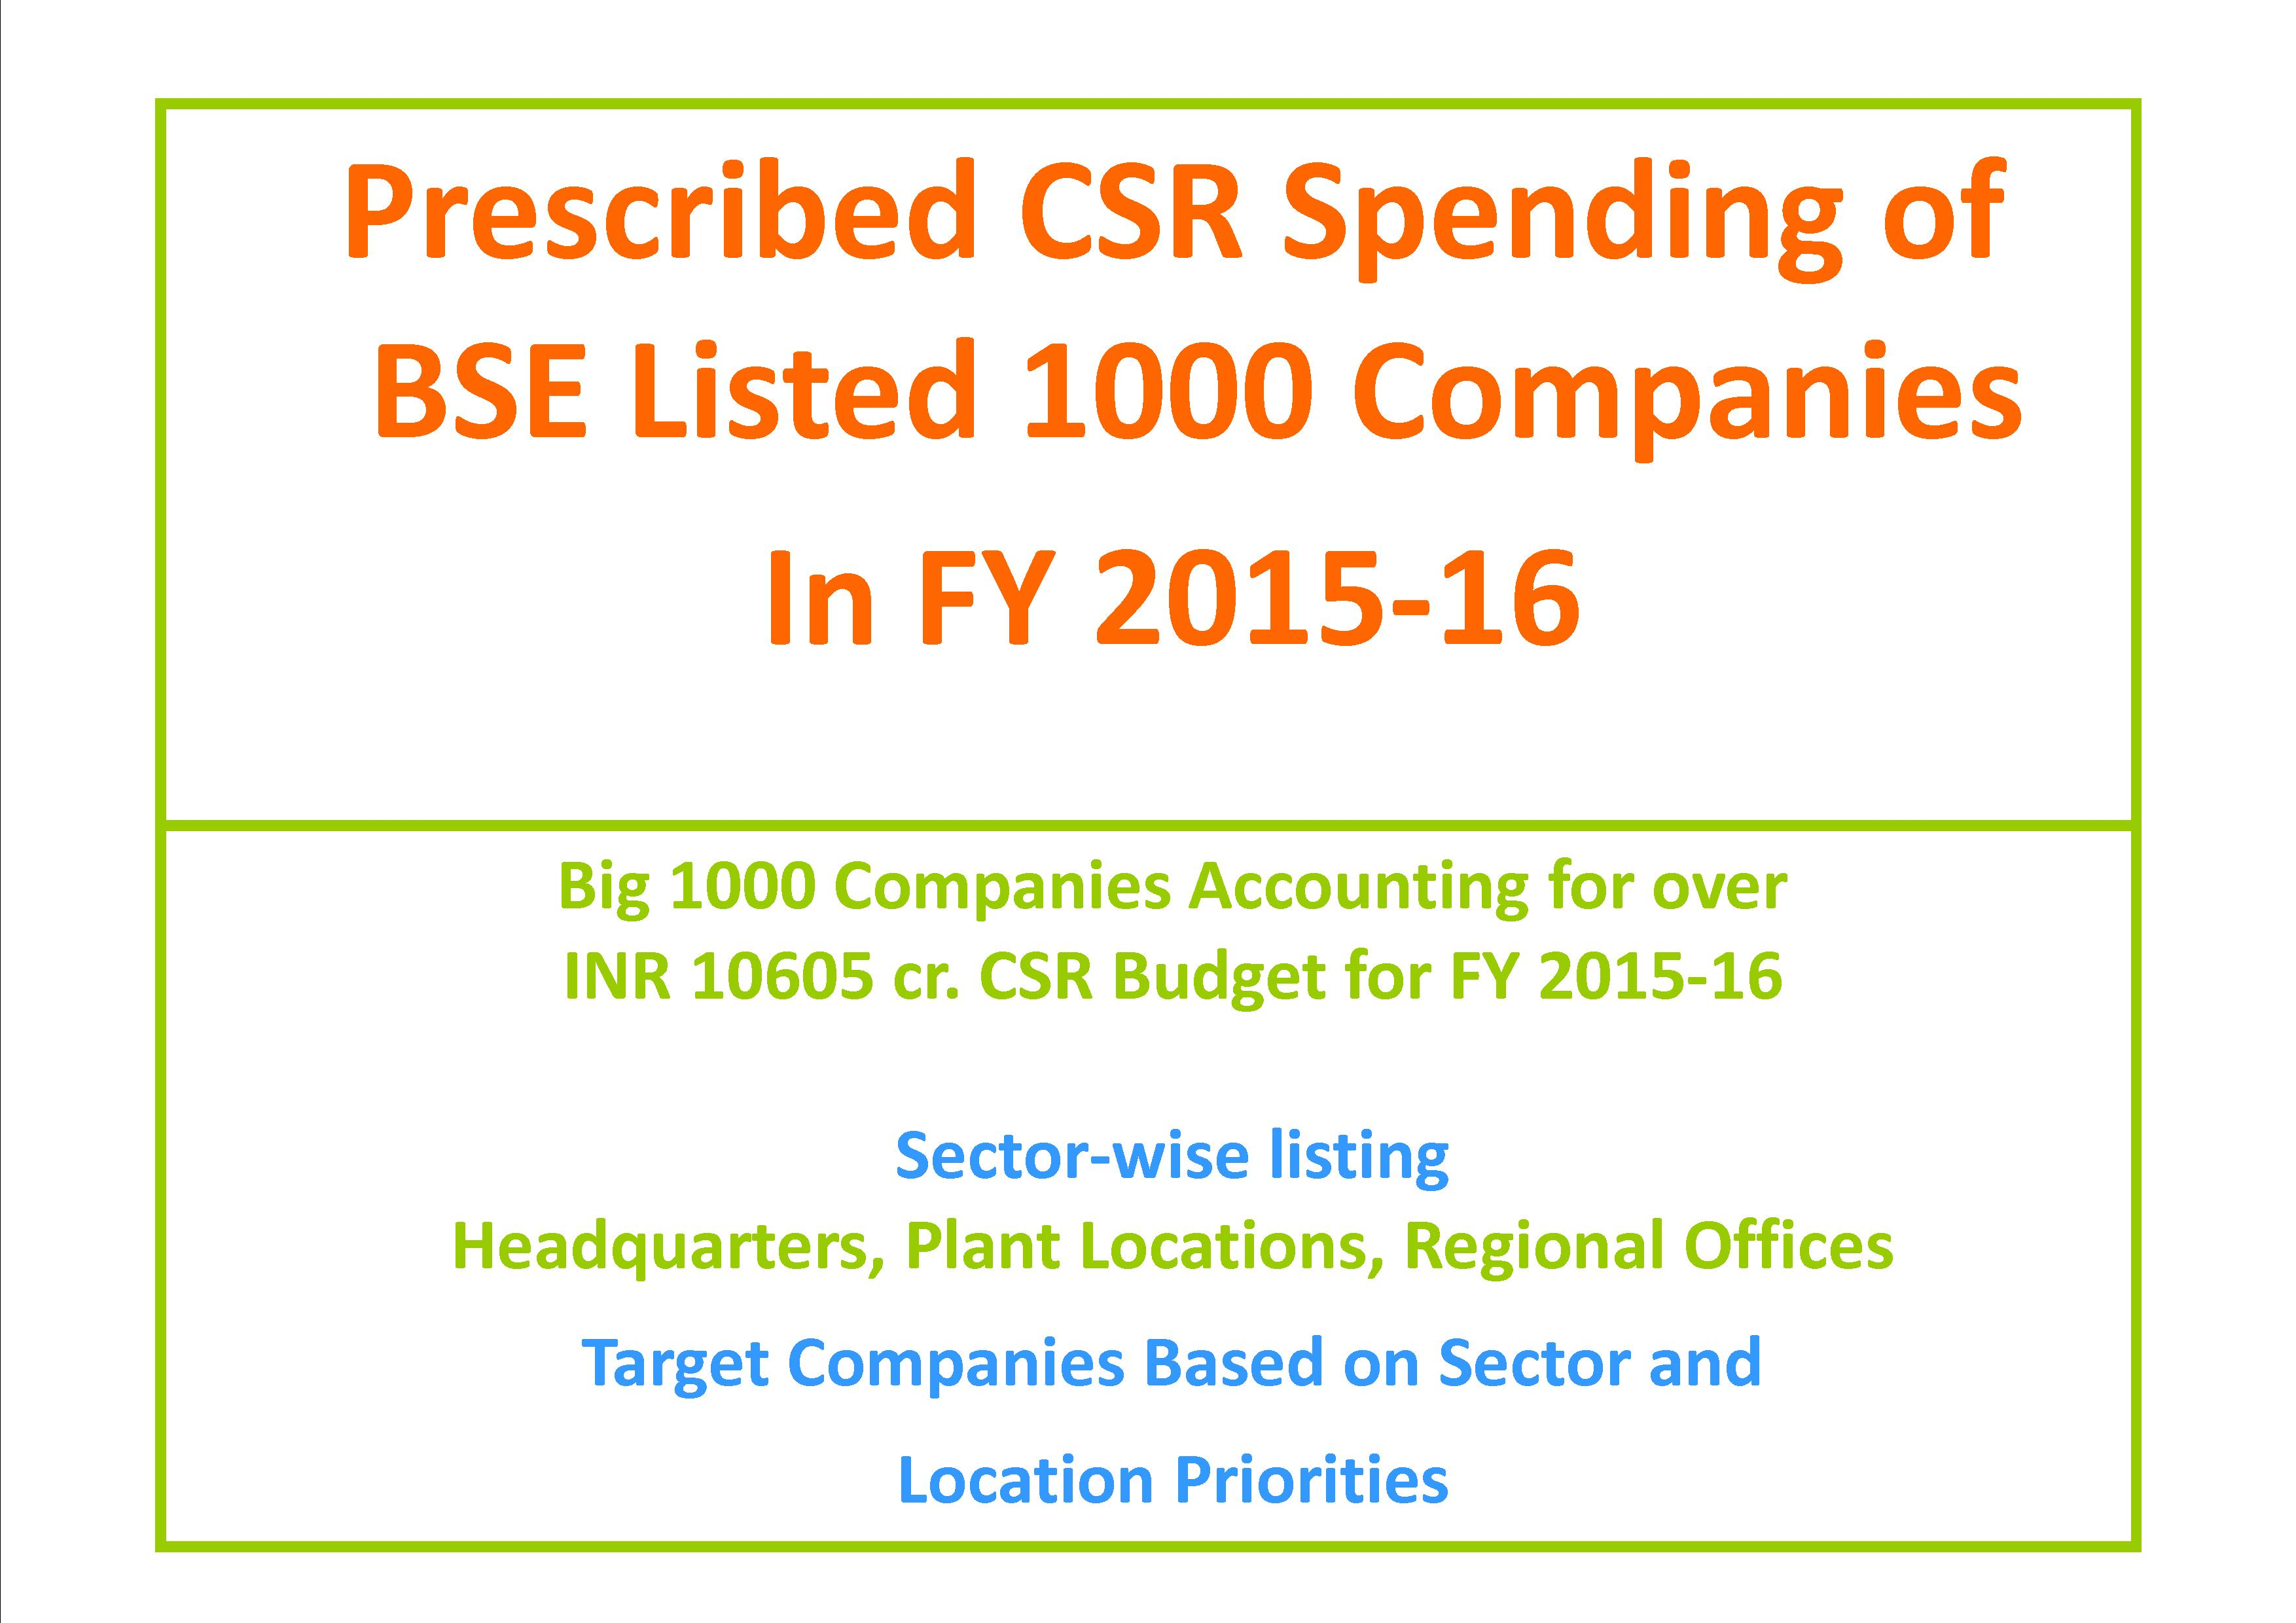 Prescribed CSR Spending Budget of Big 1000 Companies in FY 2015-16